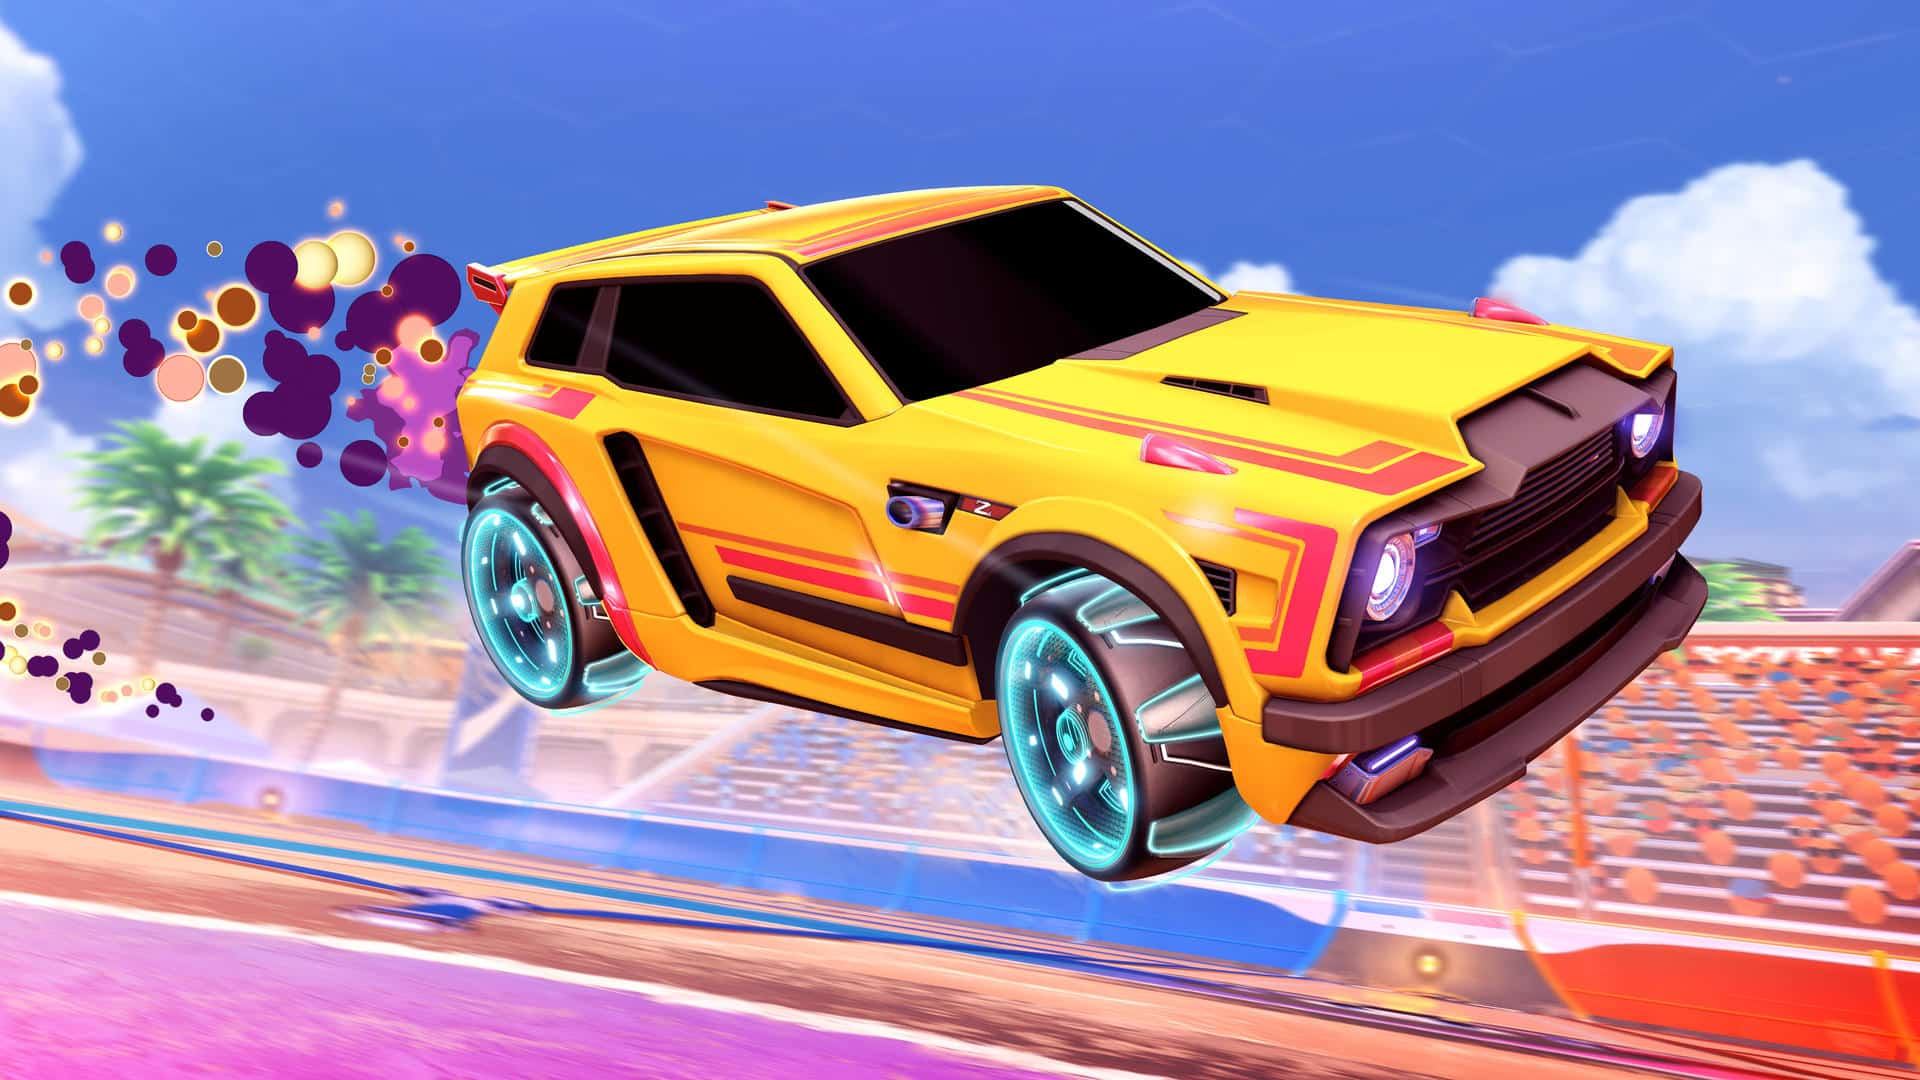 Rocket League Neue Totally Awesome Kiste Kommt Gaming Grounds De